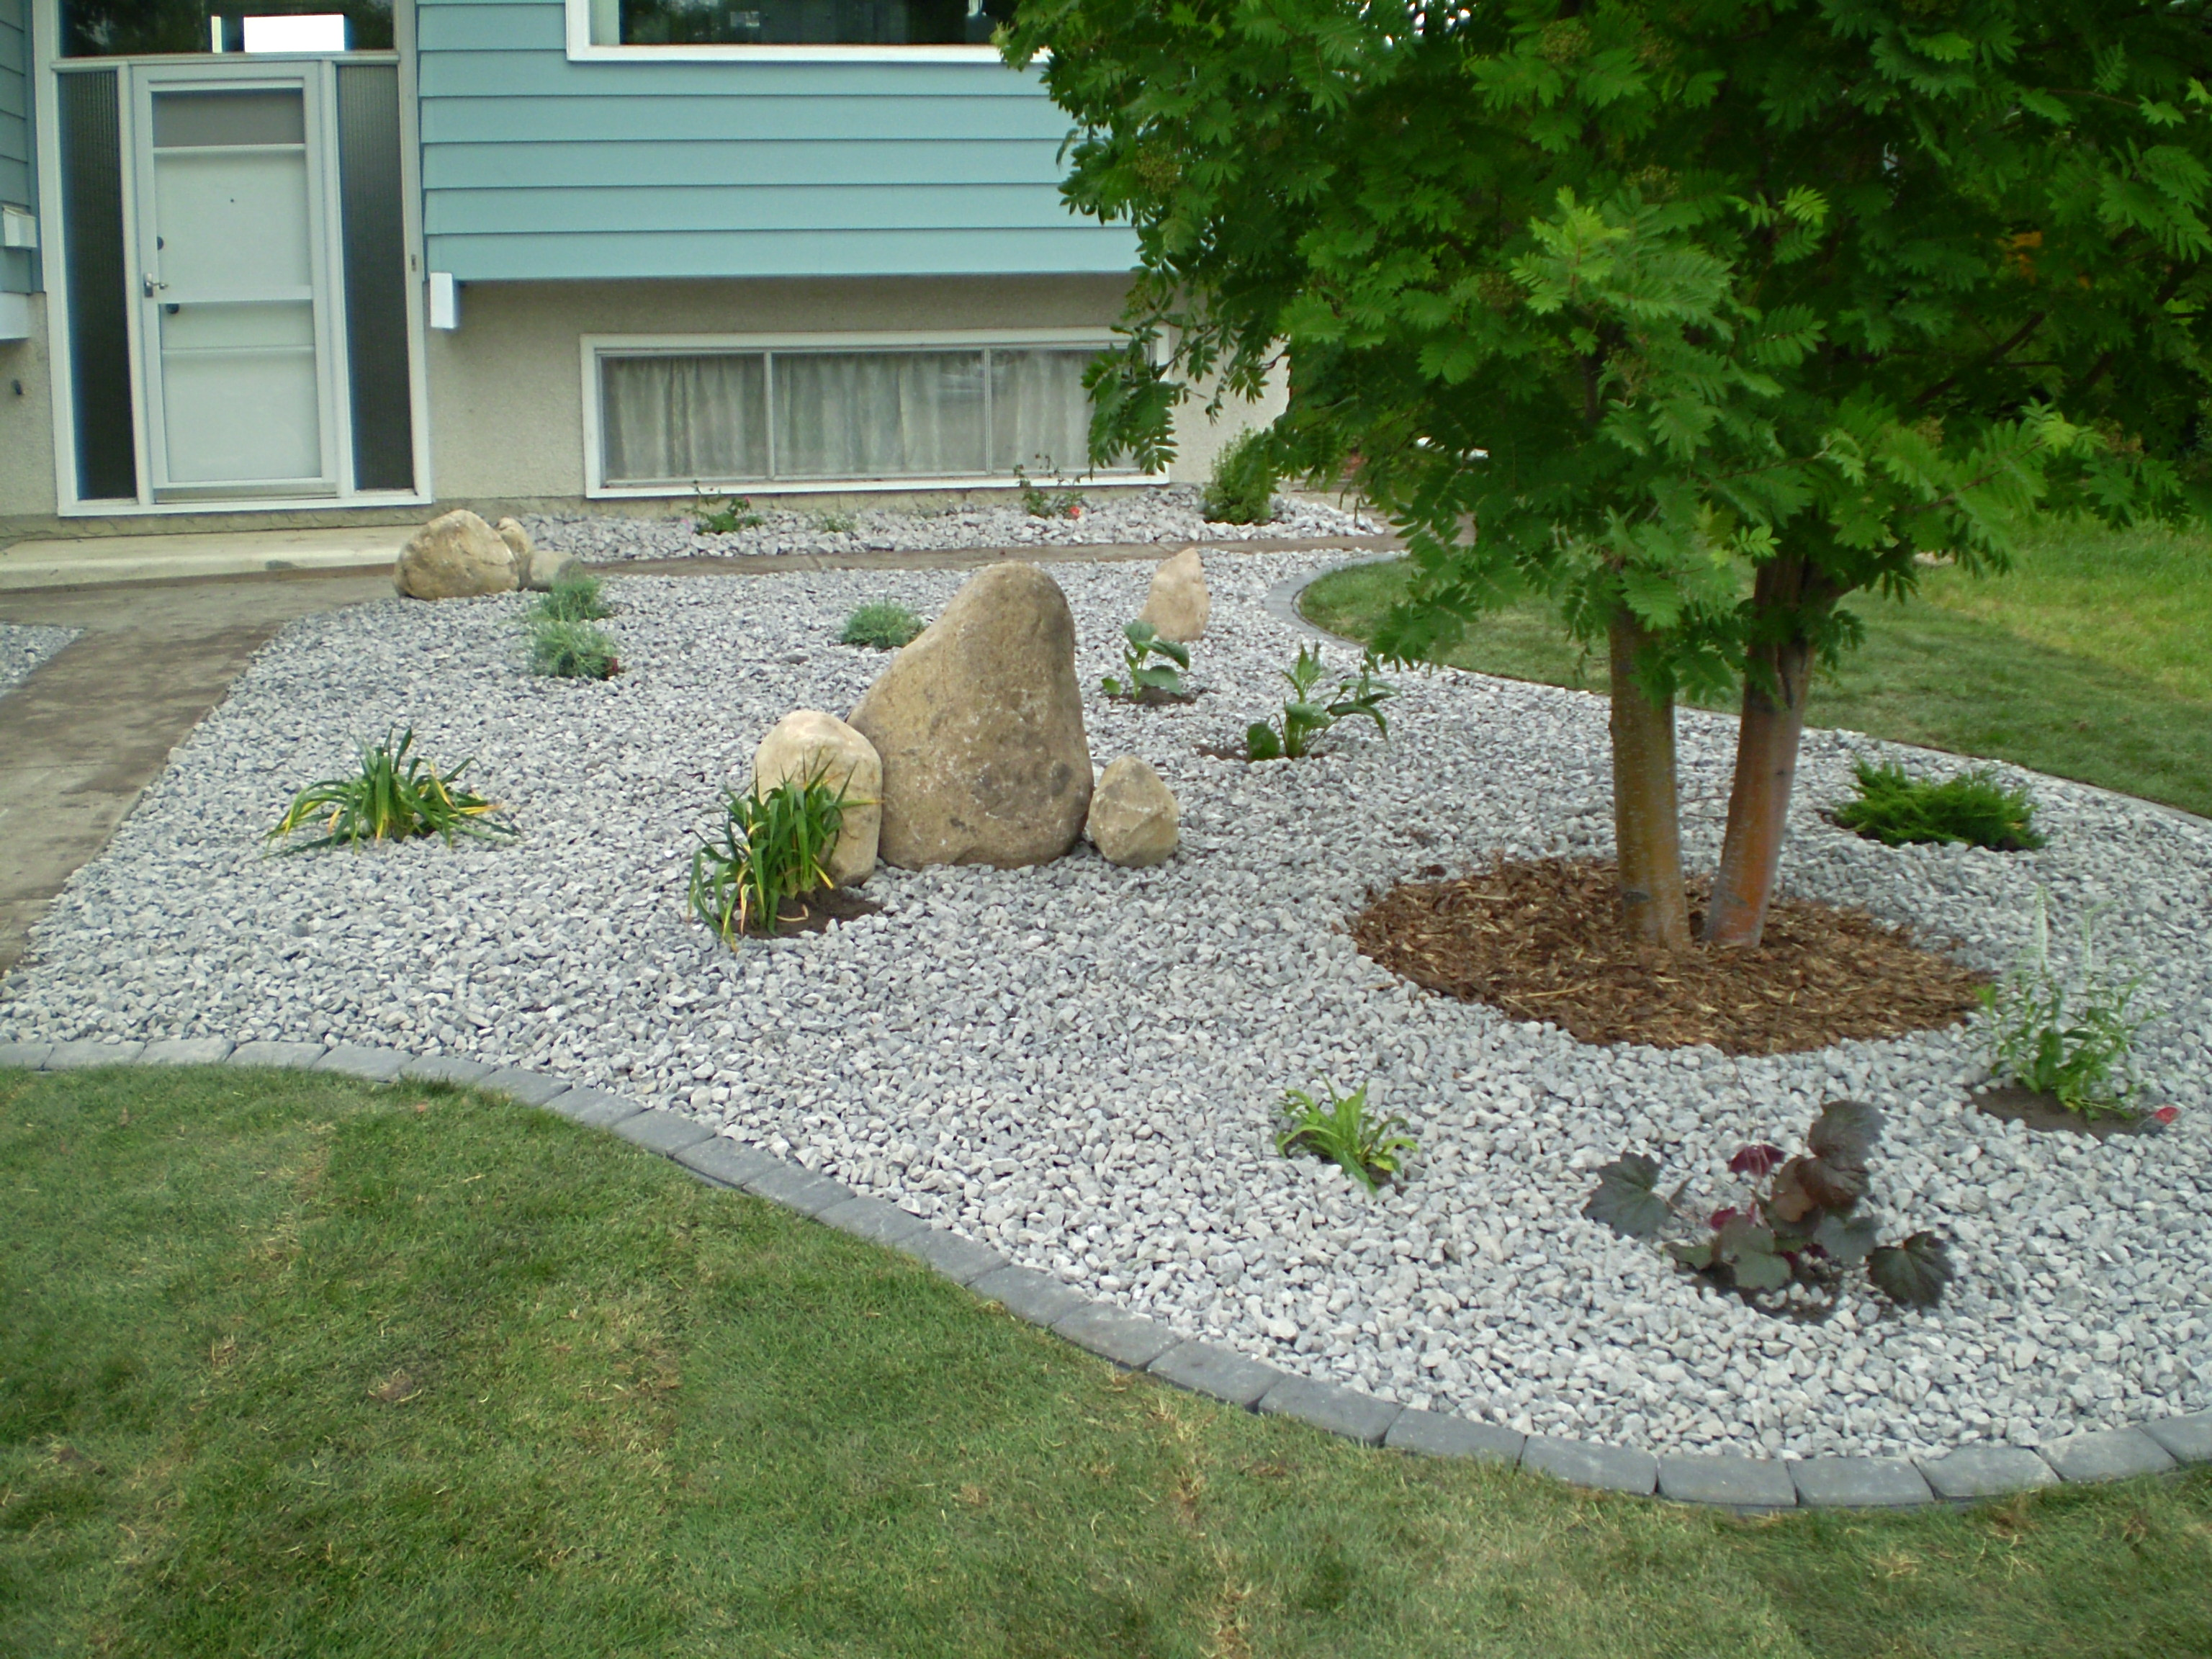 Garden With Rocks And Stones : Rocks bubblers whitemud landscaping and garden center edmonton